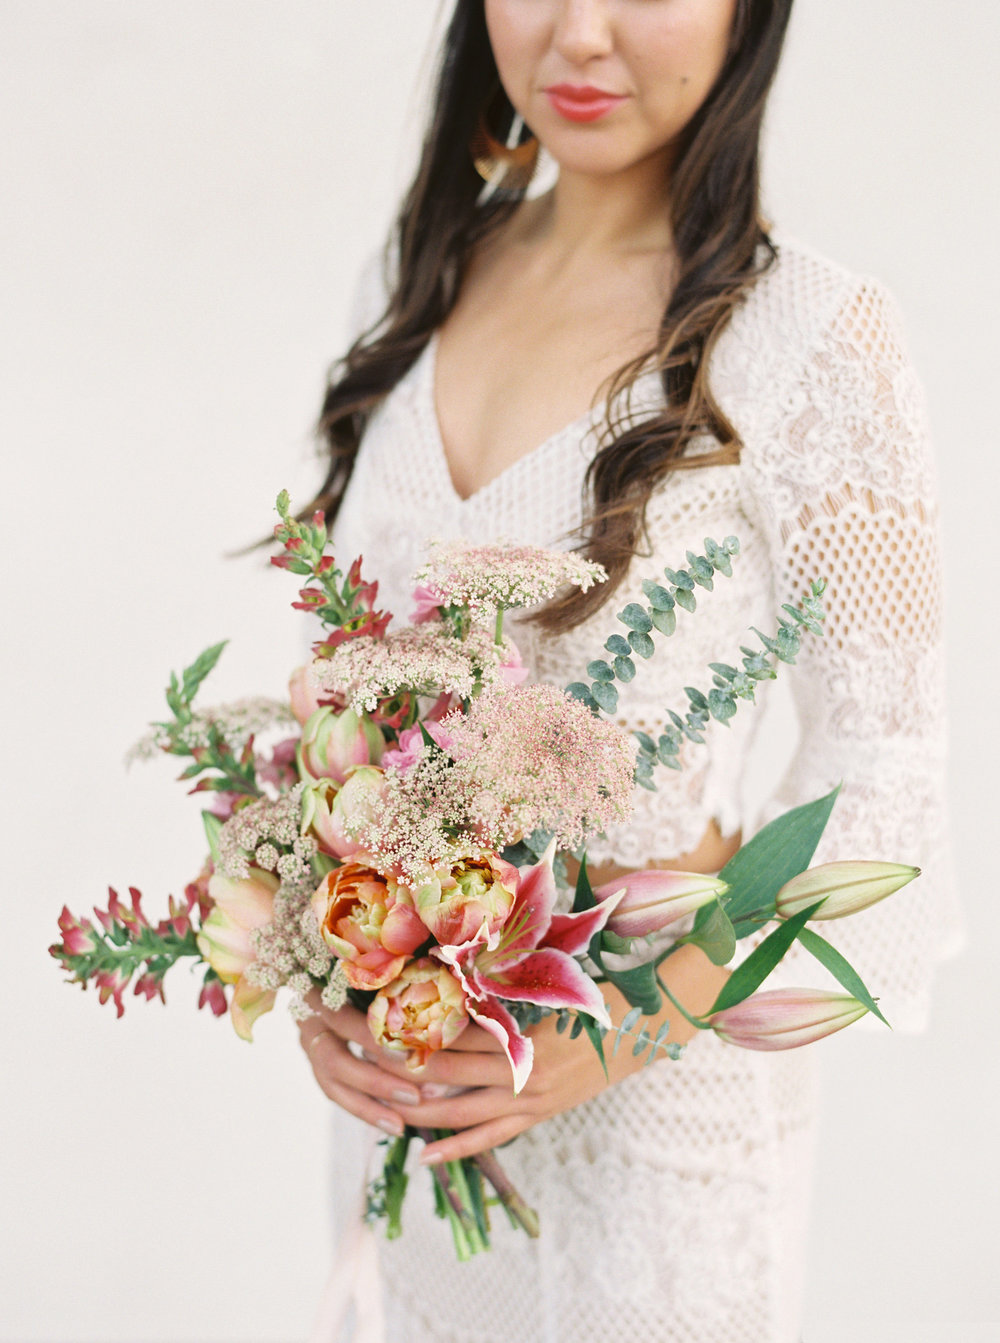 boho-inspired-wedding-at-casa-bella-in-sunol-california-25.jpg